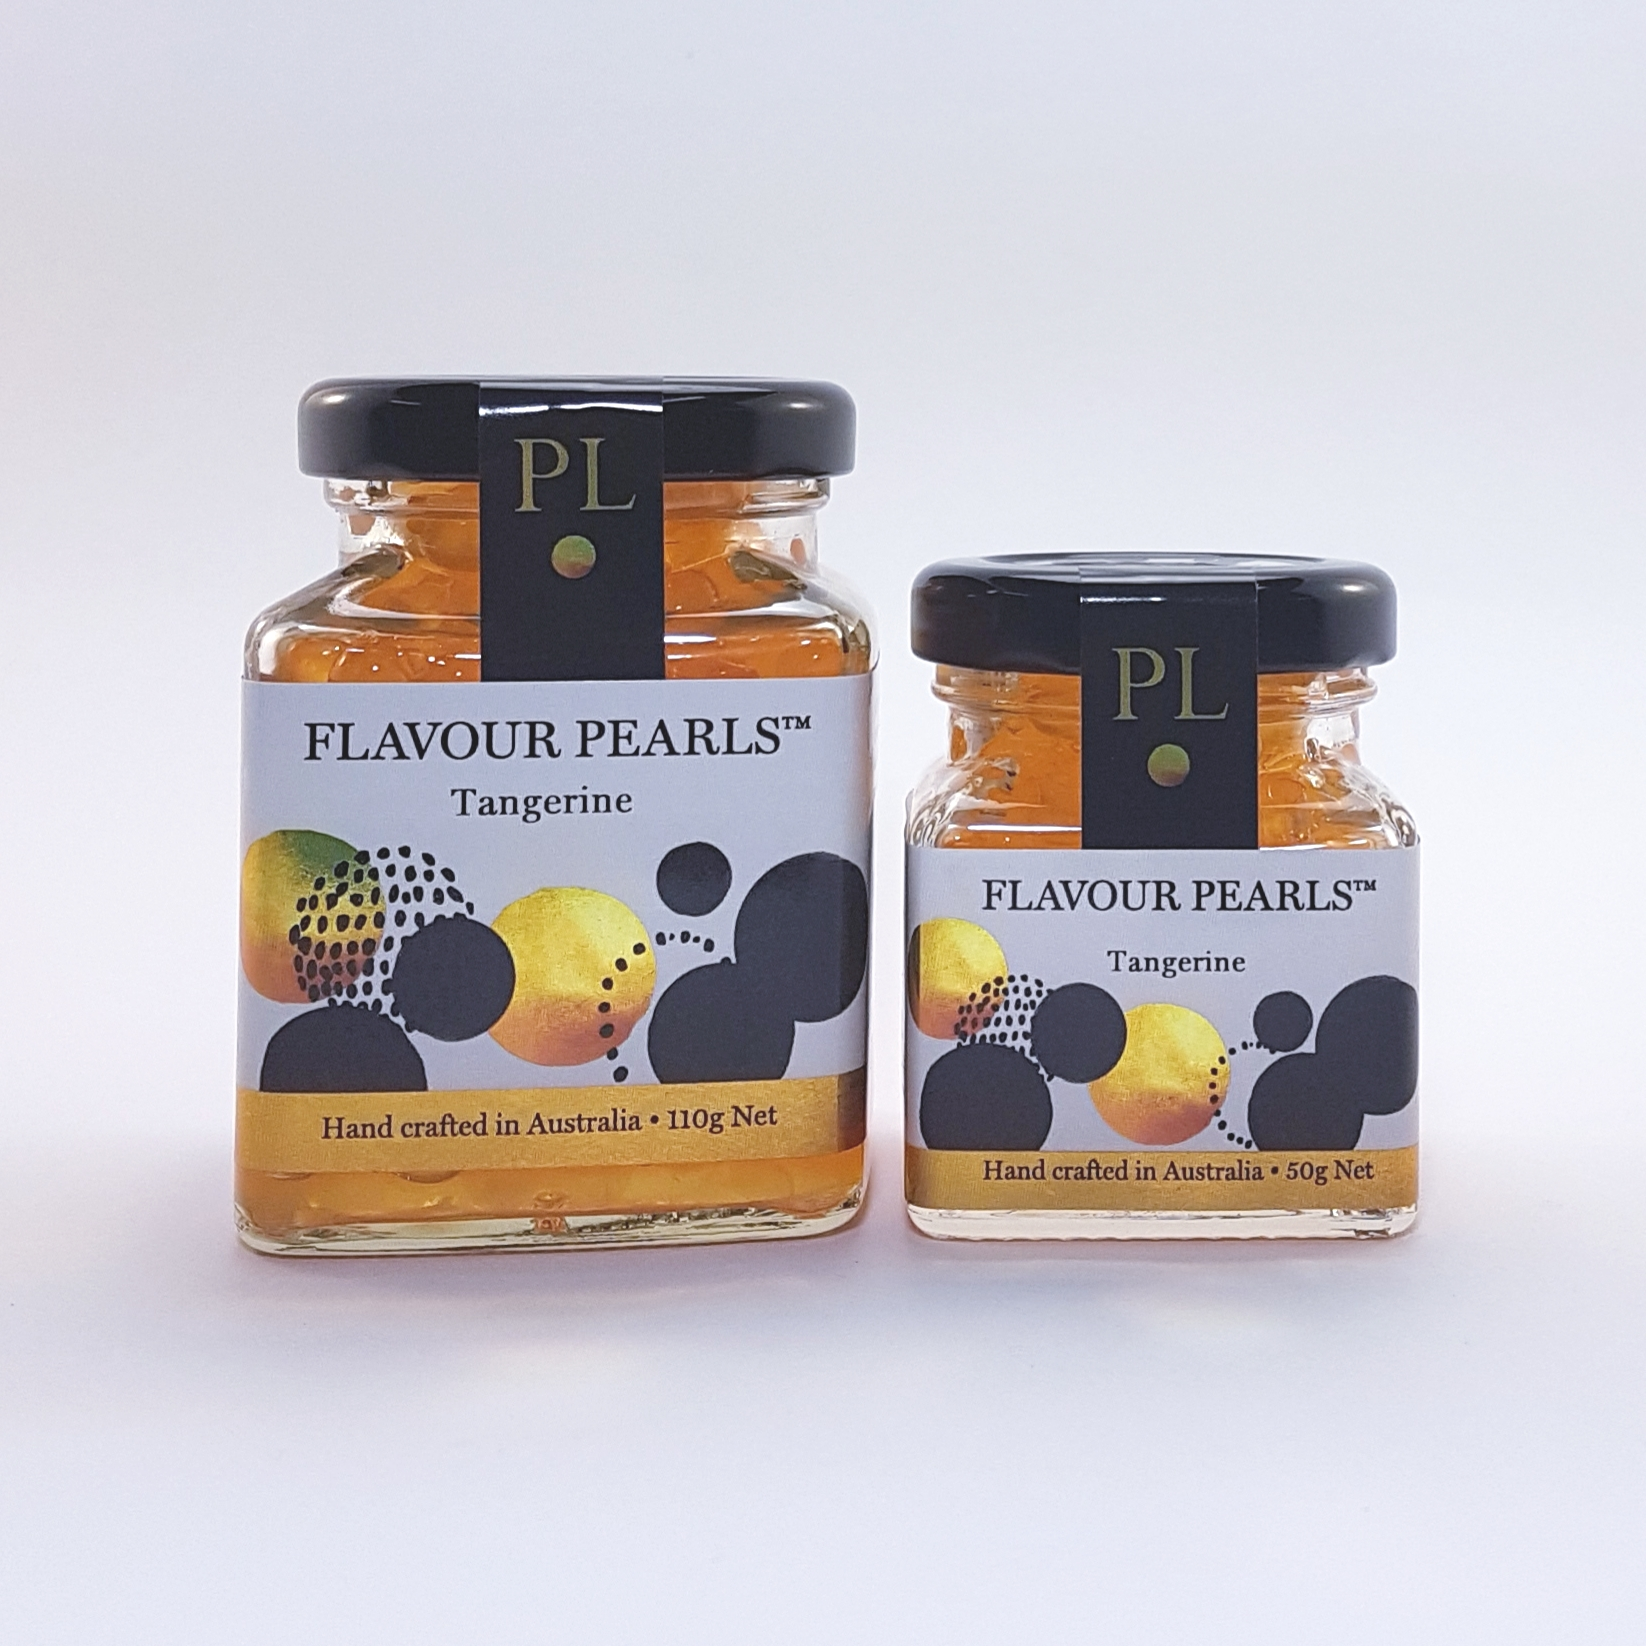 Tangerine Flavour Pearls 110g and 50g Jars